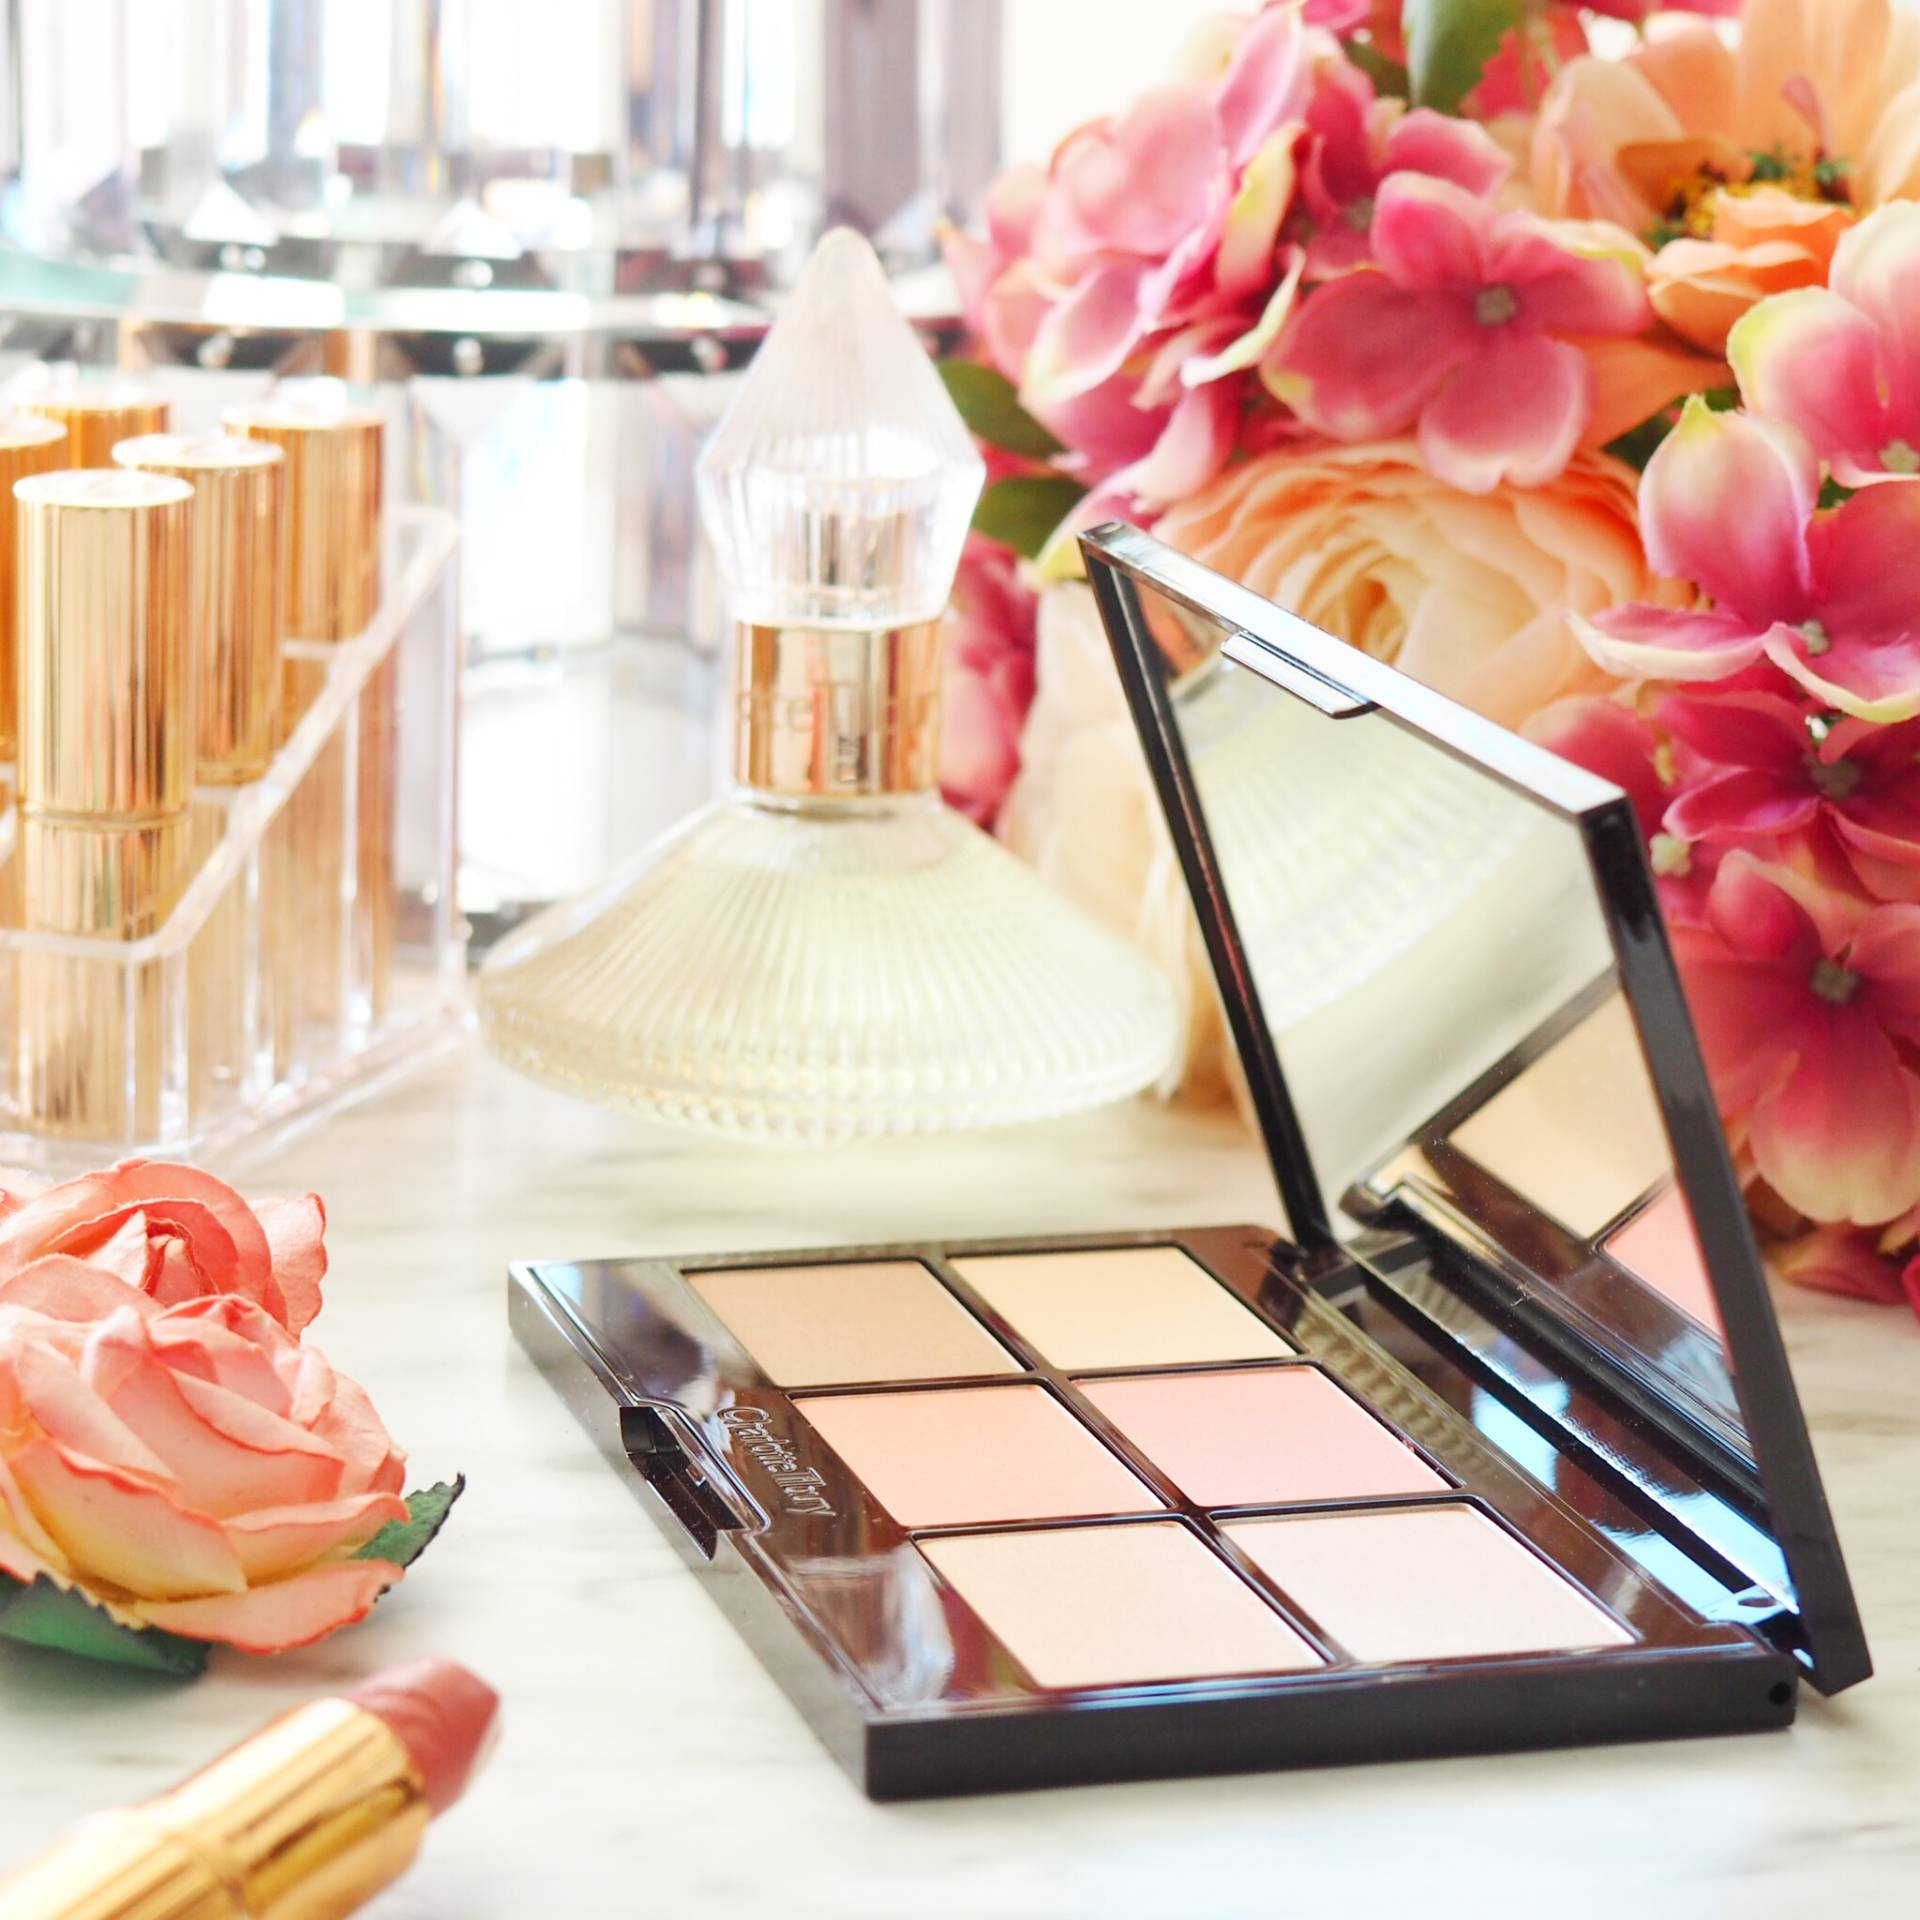 Charlotte Tilbury Glowing Pretty Palette